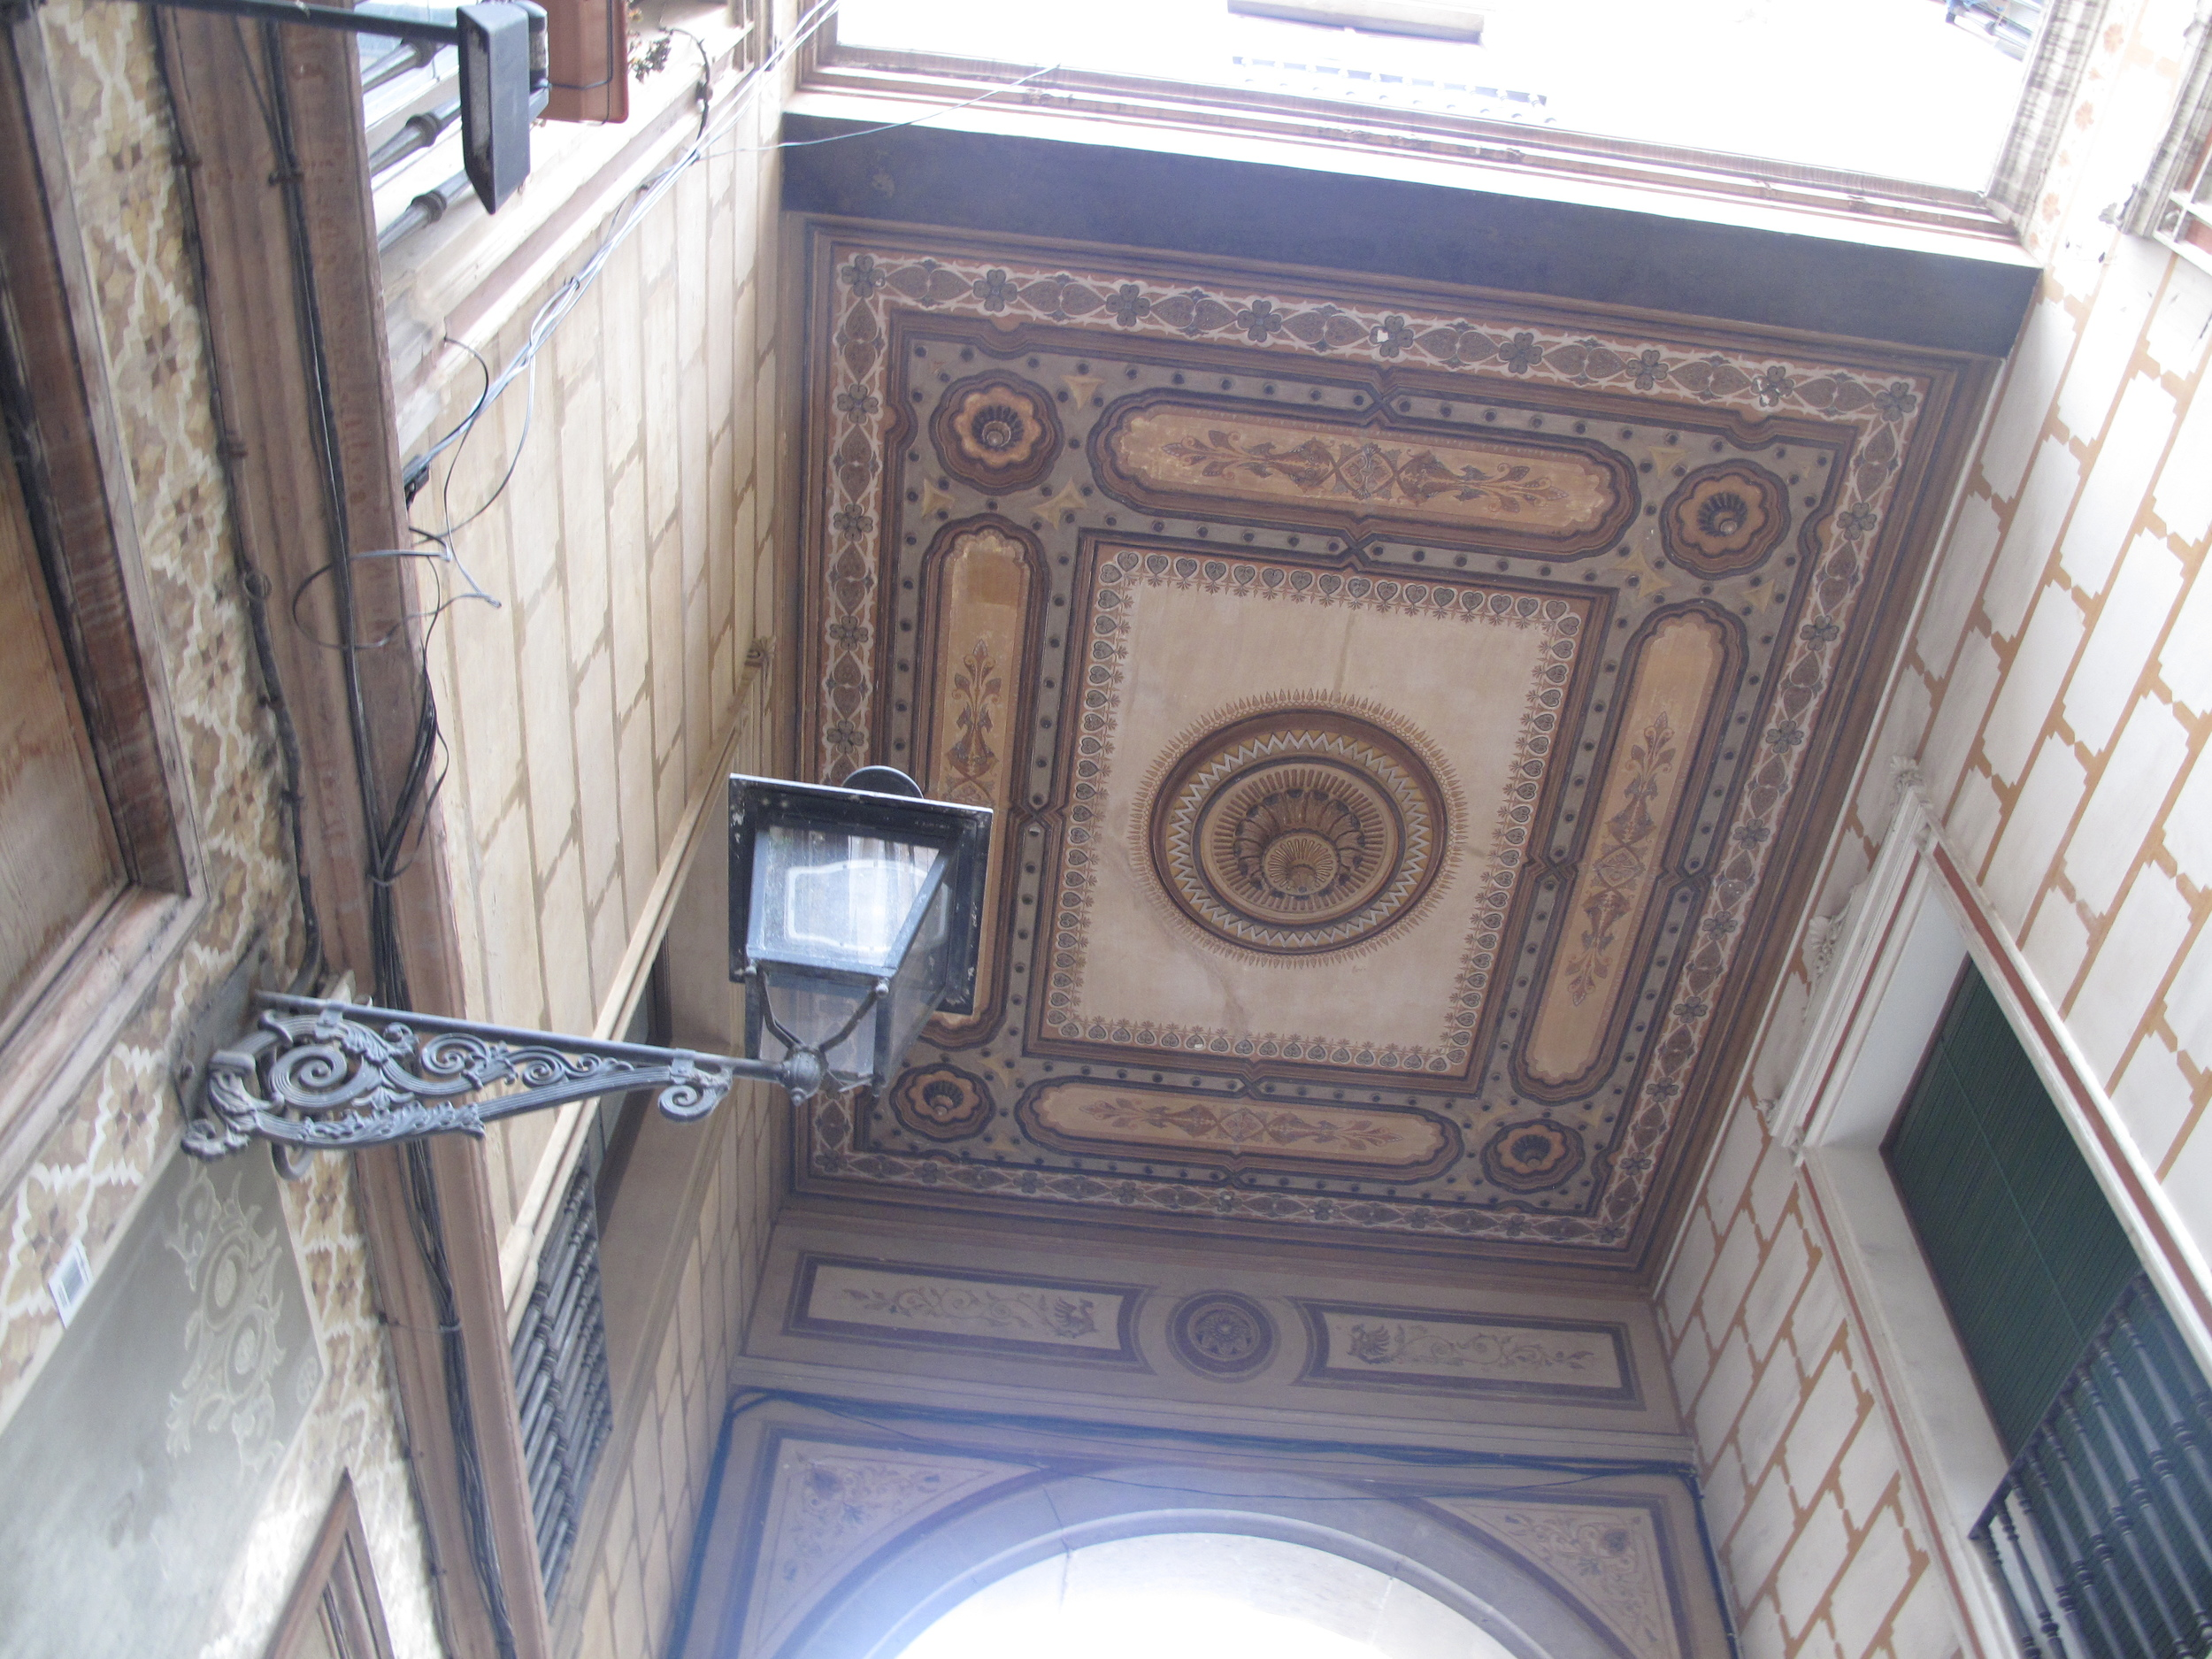 Painted ceiling in Barcelona - Renaissance architecture.